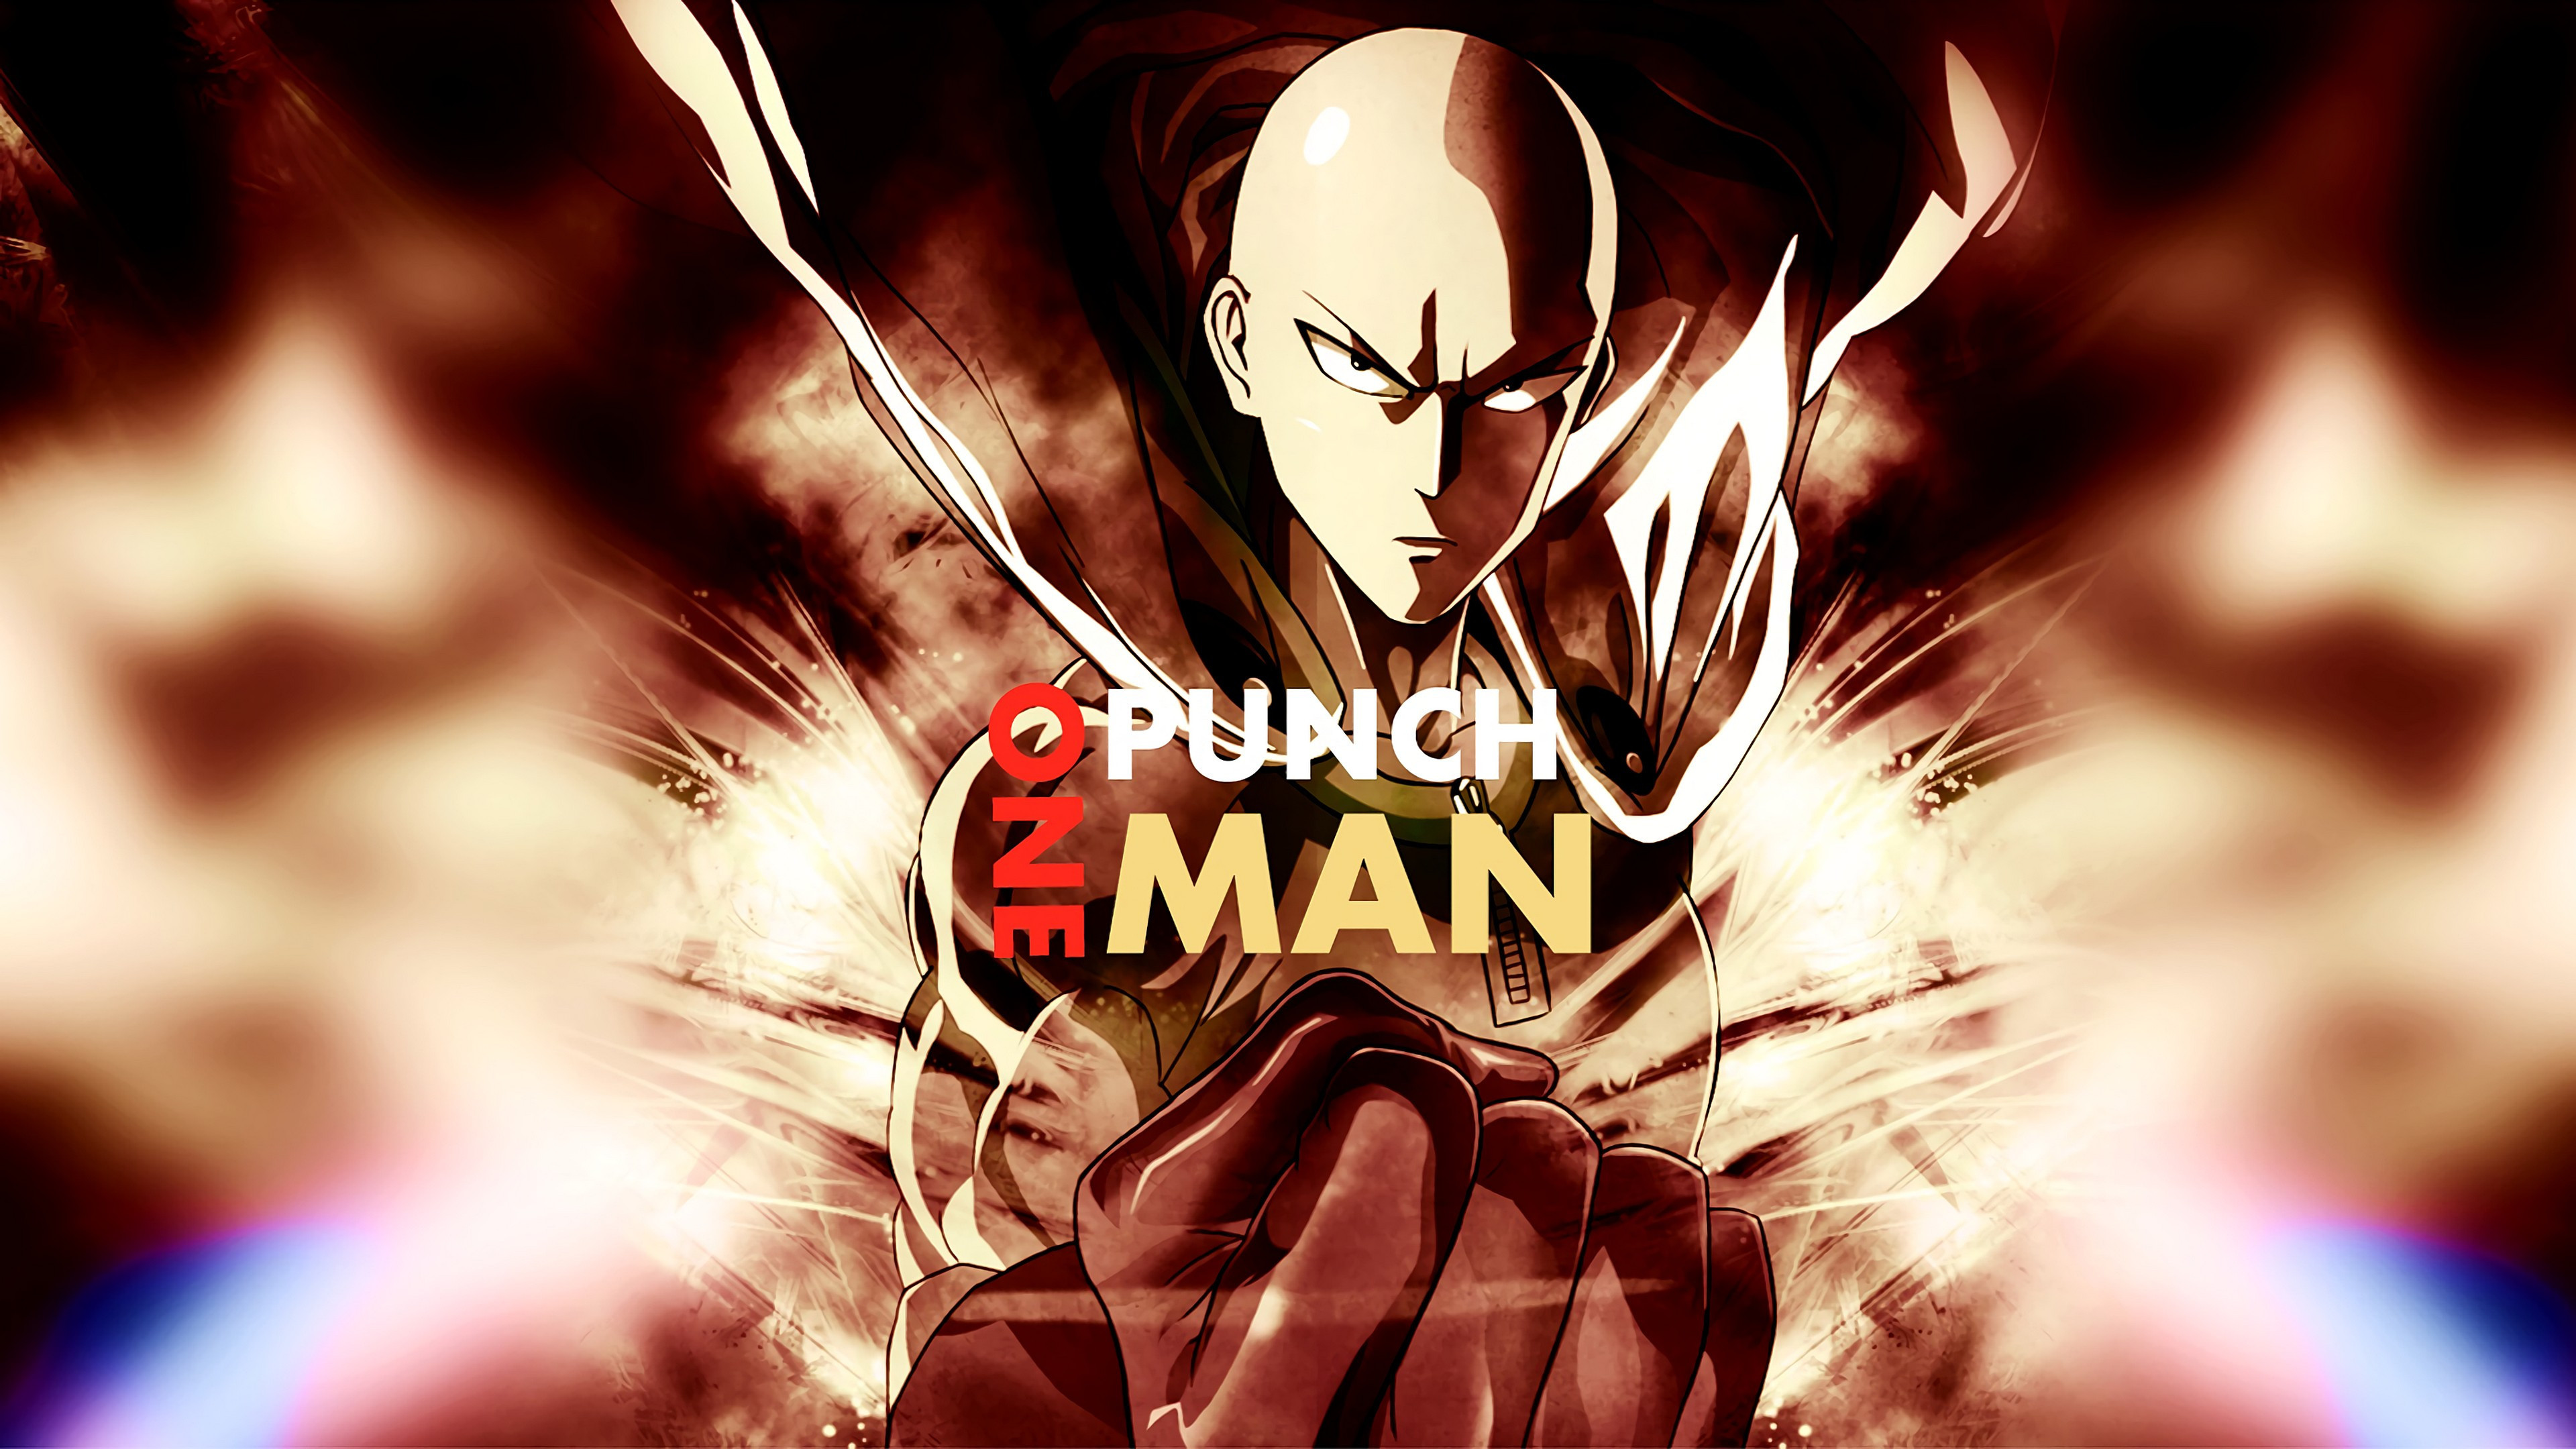 Saitama One Punch Man Anime Wallpaper 4k Ultra Hd Id 3213